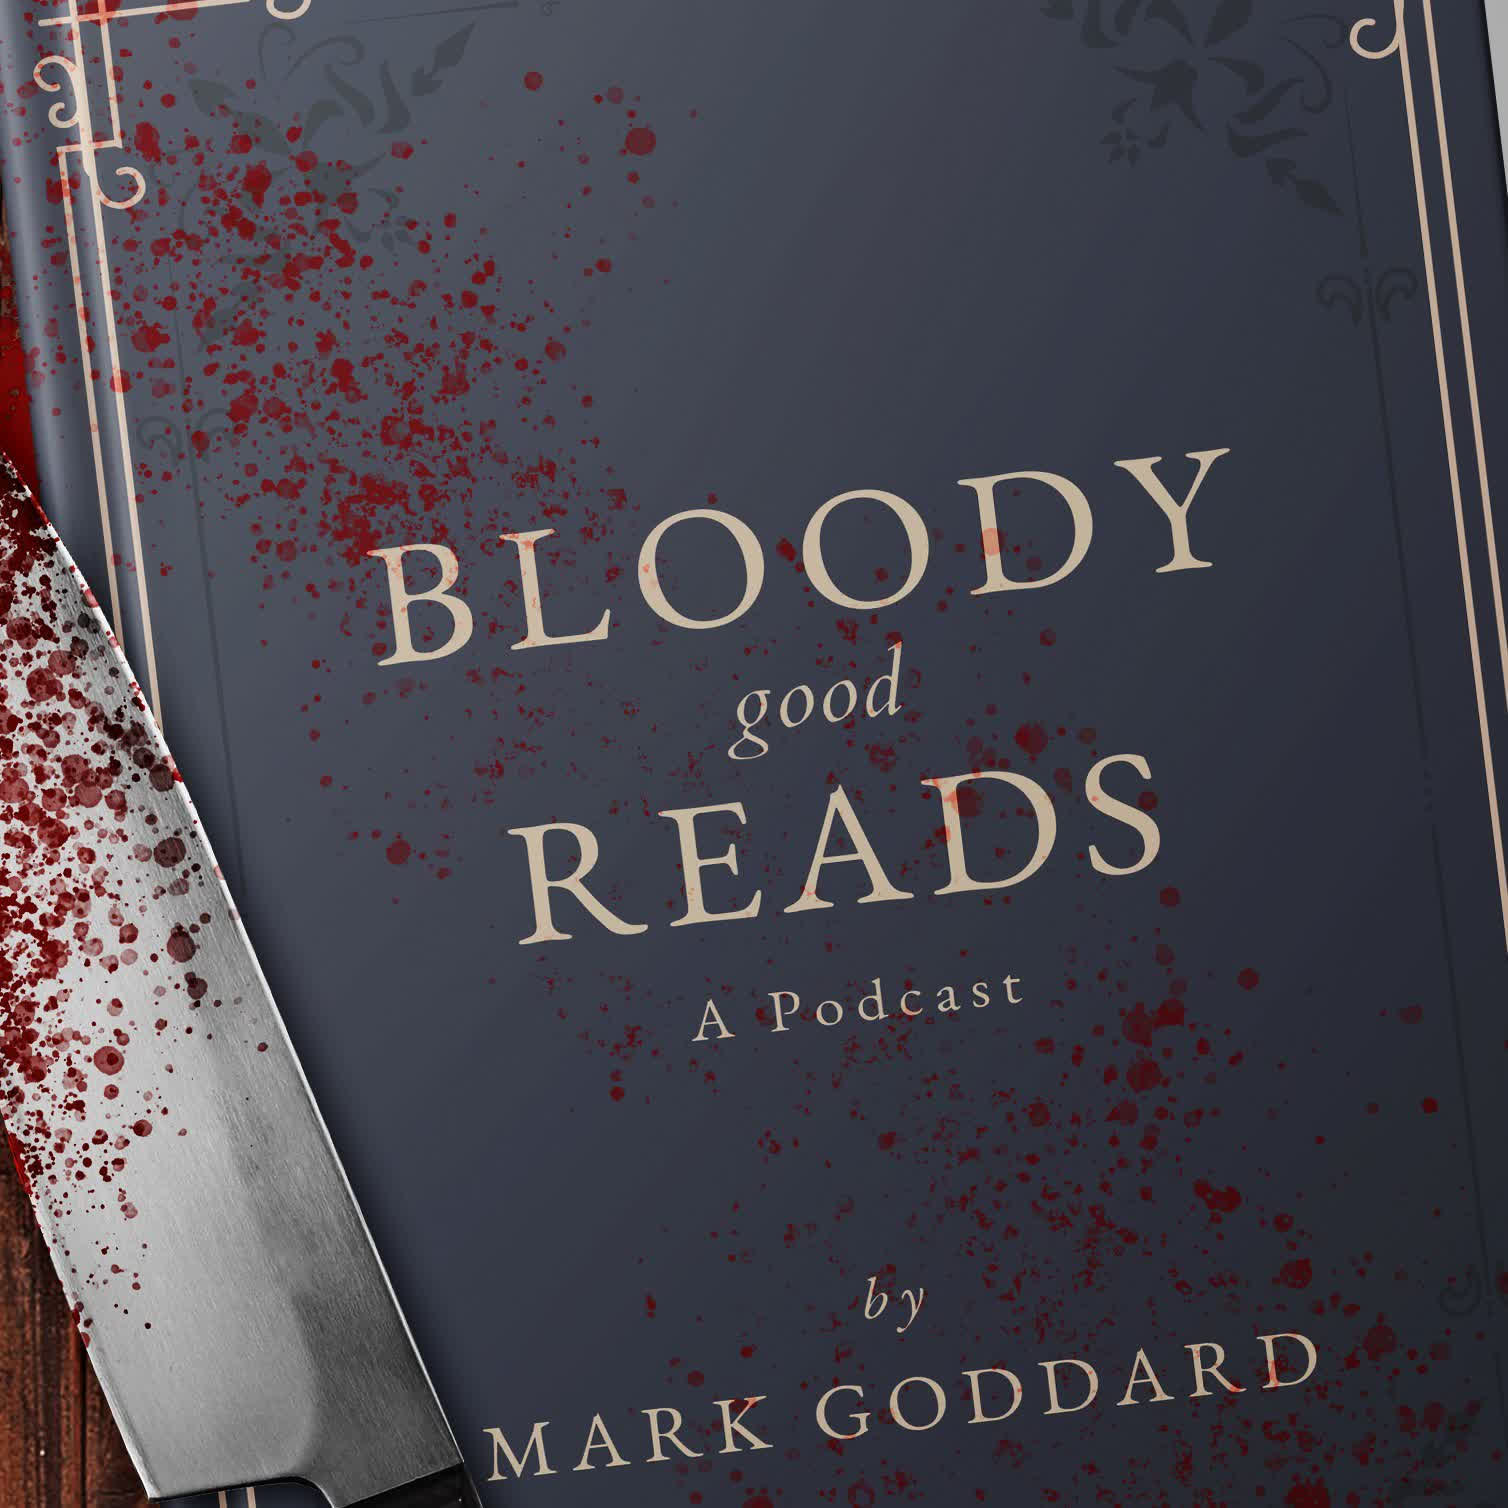 Bloody Good Reads Chapter 8 - Eric Guignard